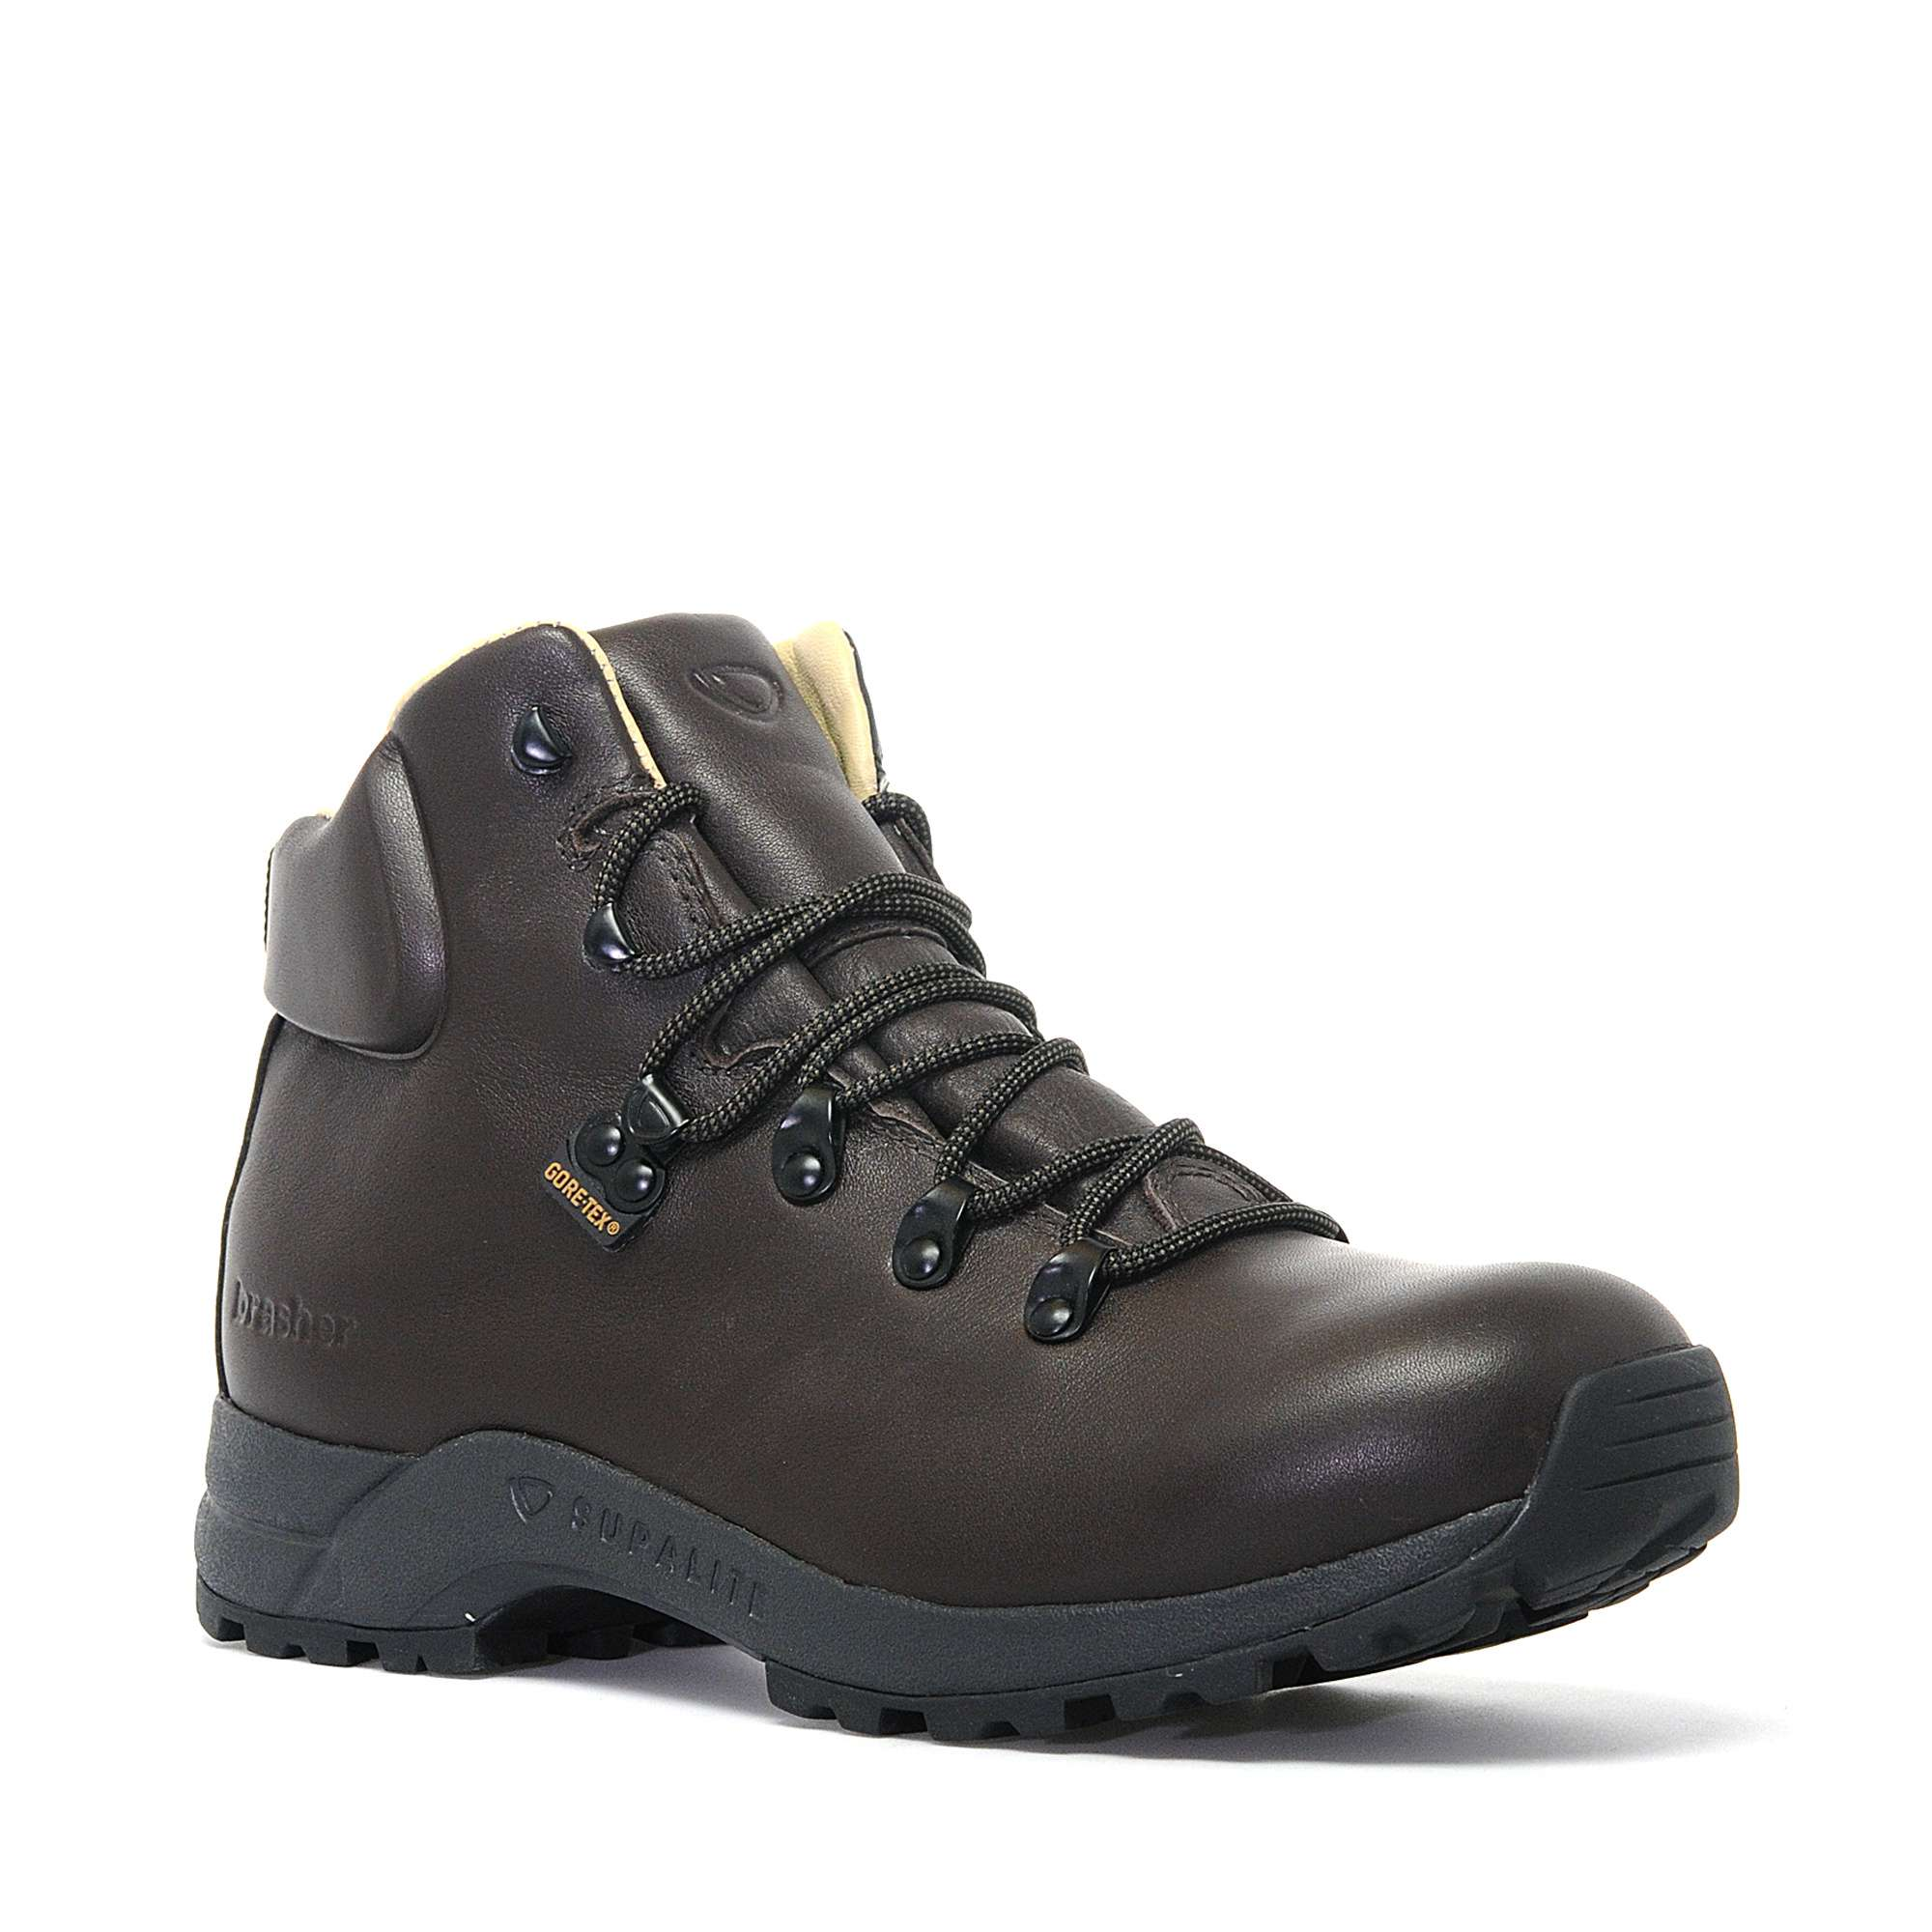 BRASHER Men's Supalite II GTX® Walking Boots